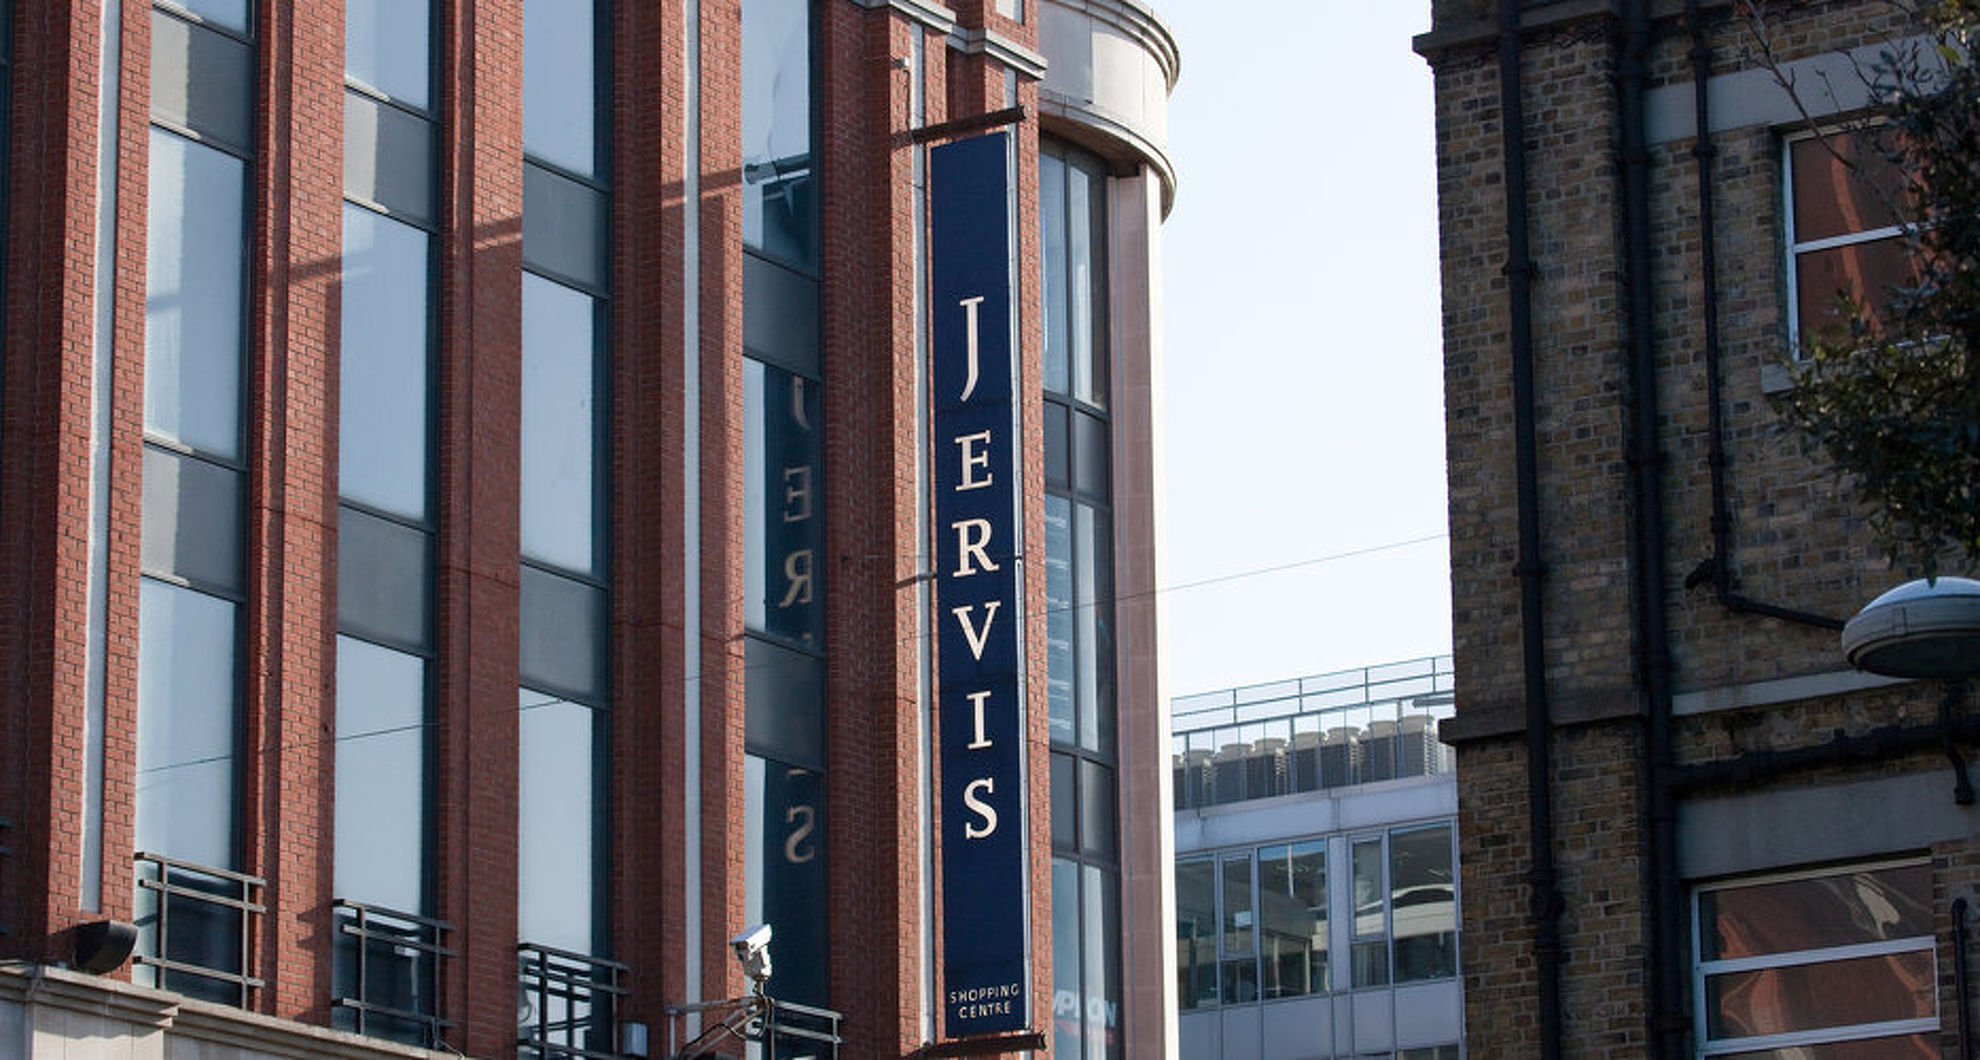 Explore Jervis Shopping Centre